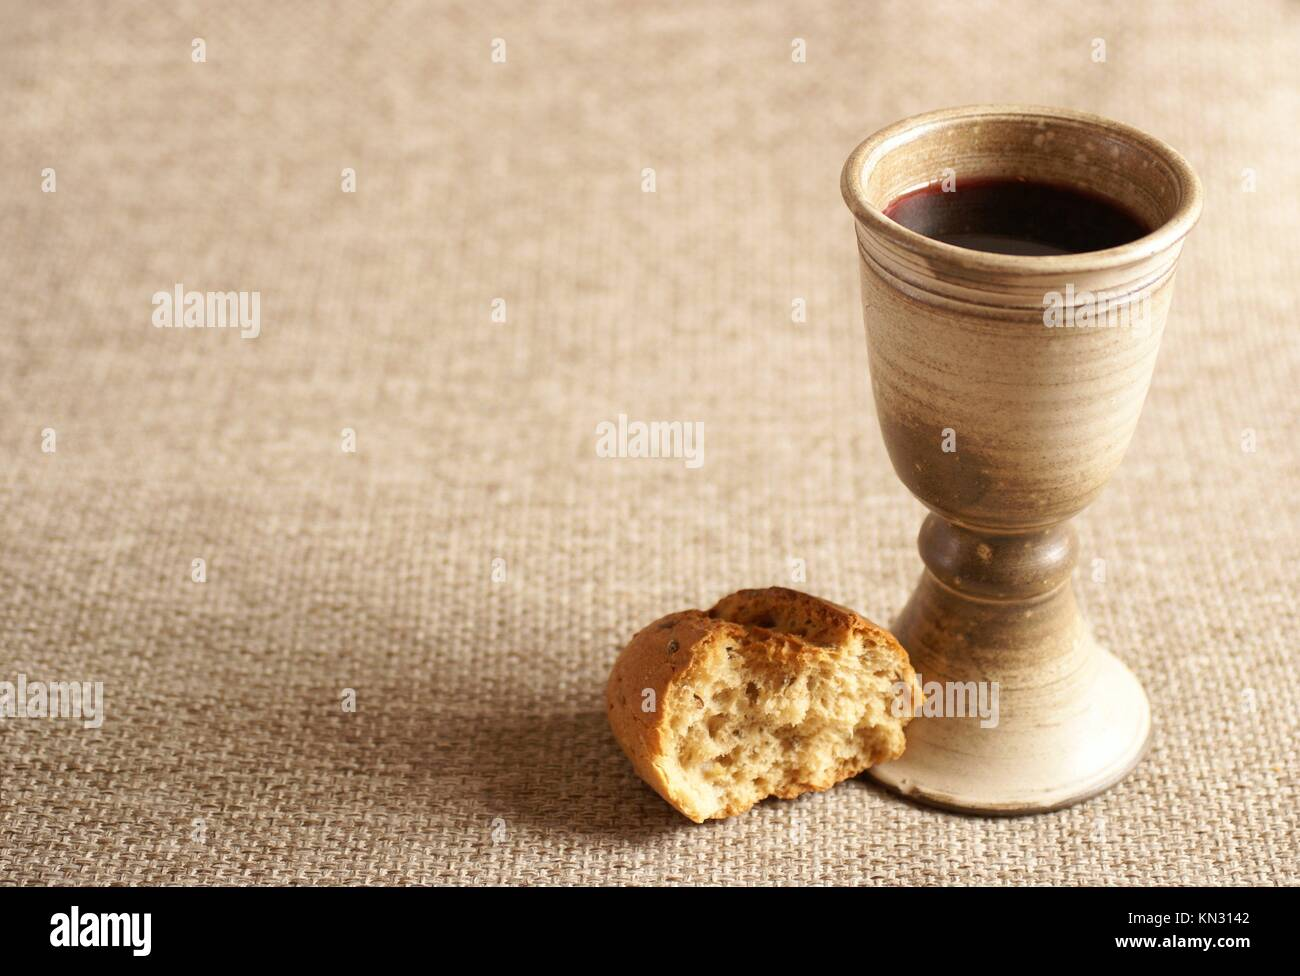 Chalice with wine and bread. Background with copy space. - Stock Image